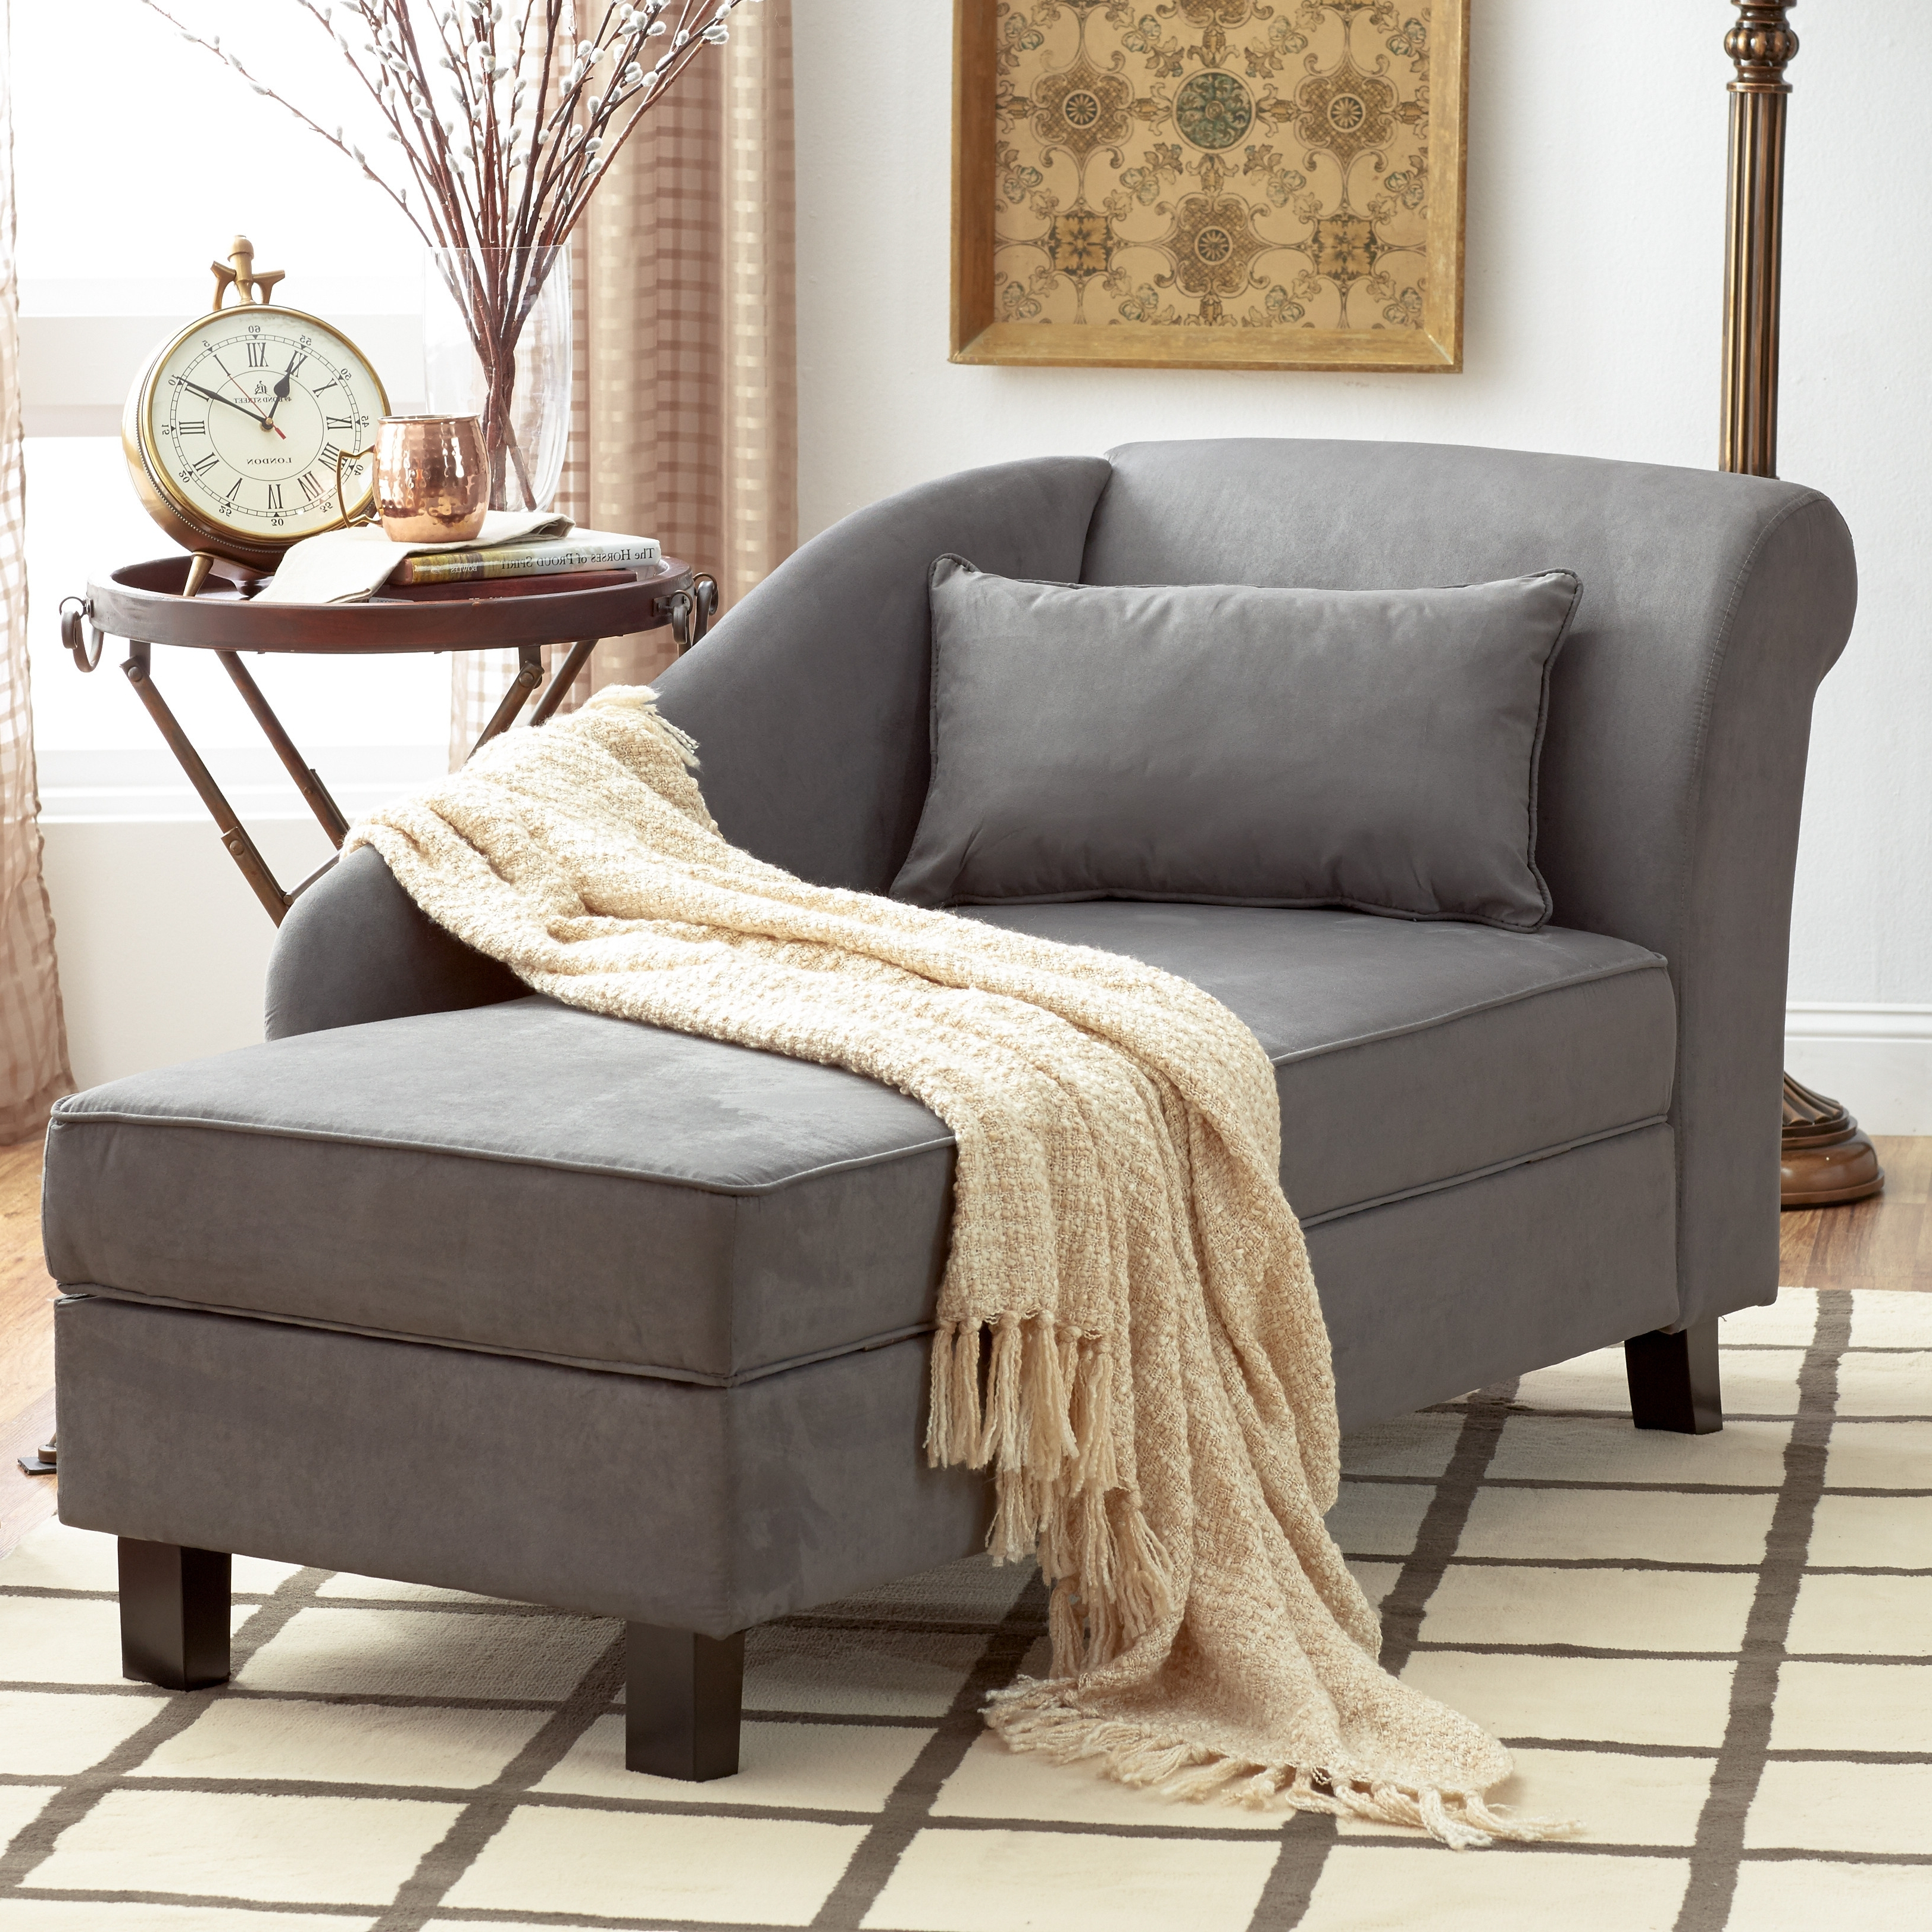 Newest Grey Chaise Lounge Chairs Intended For Sofa: Great Chaise Lounge Chairs Best Outdoor Chaise Lounges (View 4 of 15)